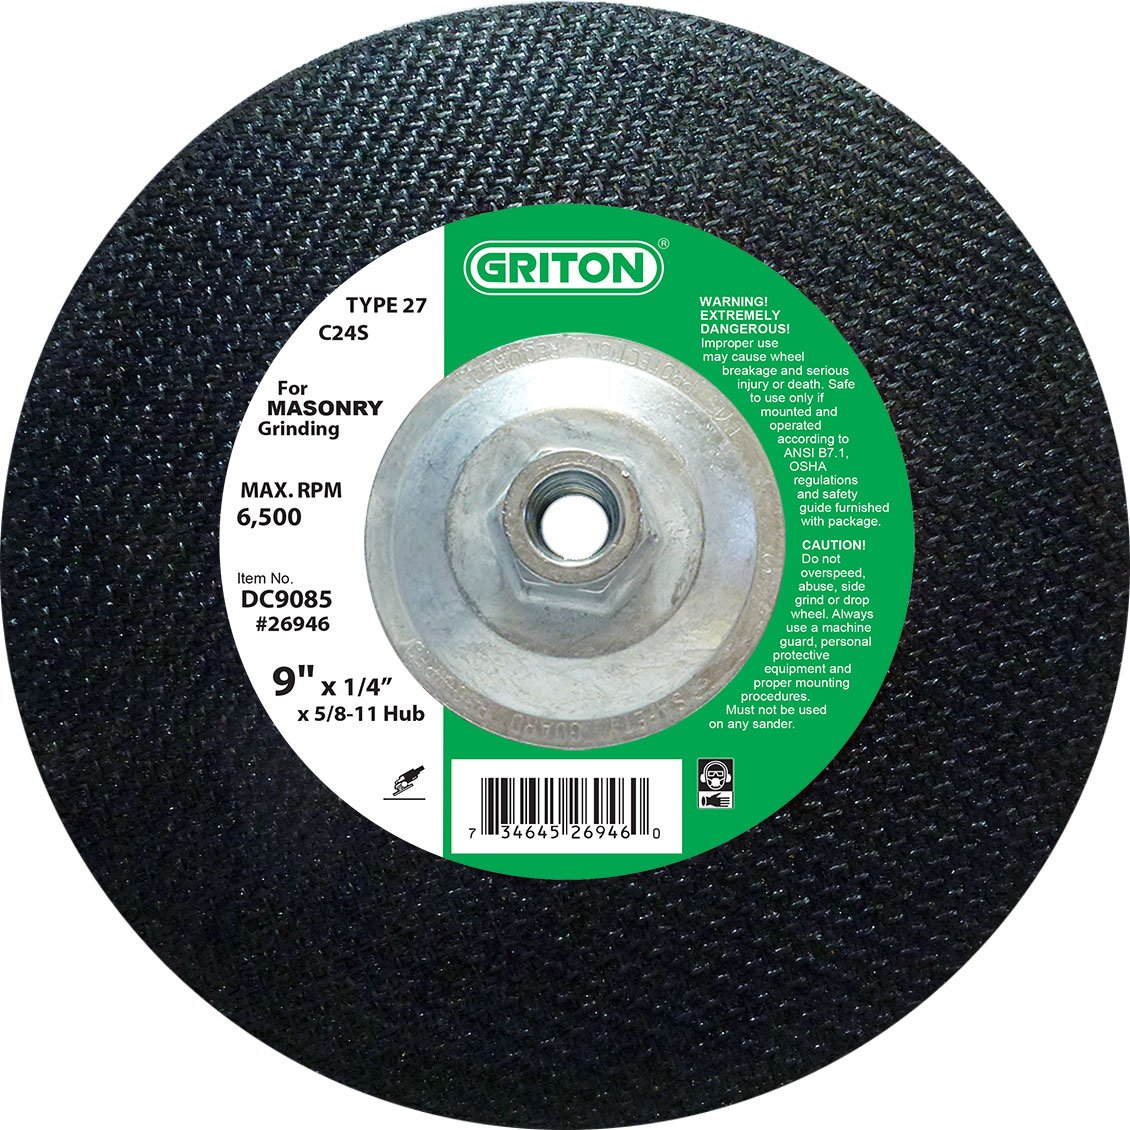 9 Diameter Griton DC9085 Type 27 Grinding Wheel Used on Masonry with Hub Pack of 10 6500 RPM Silicon Carbide